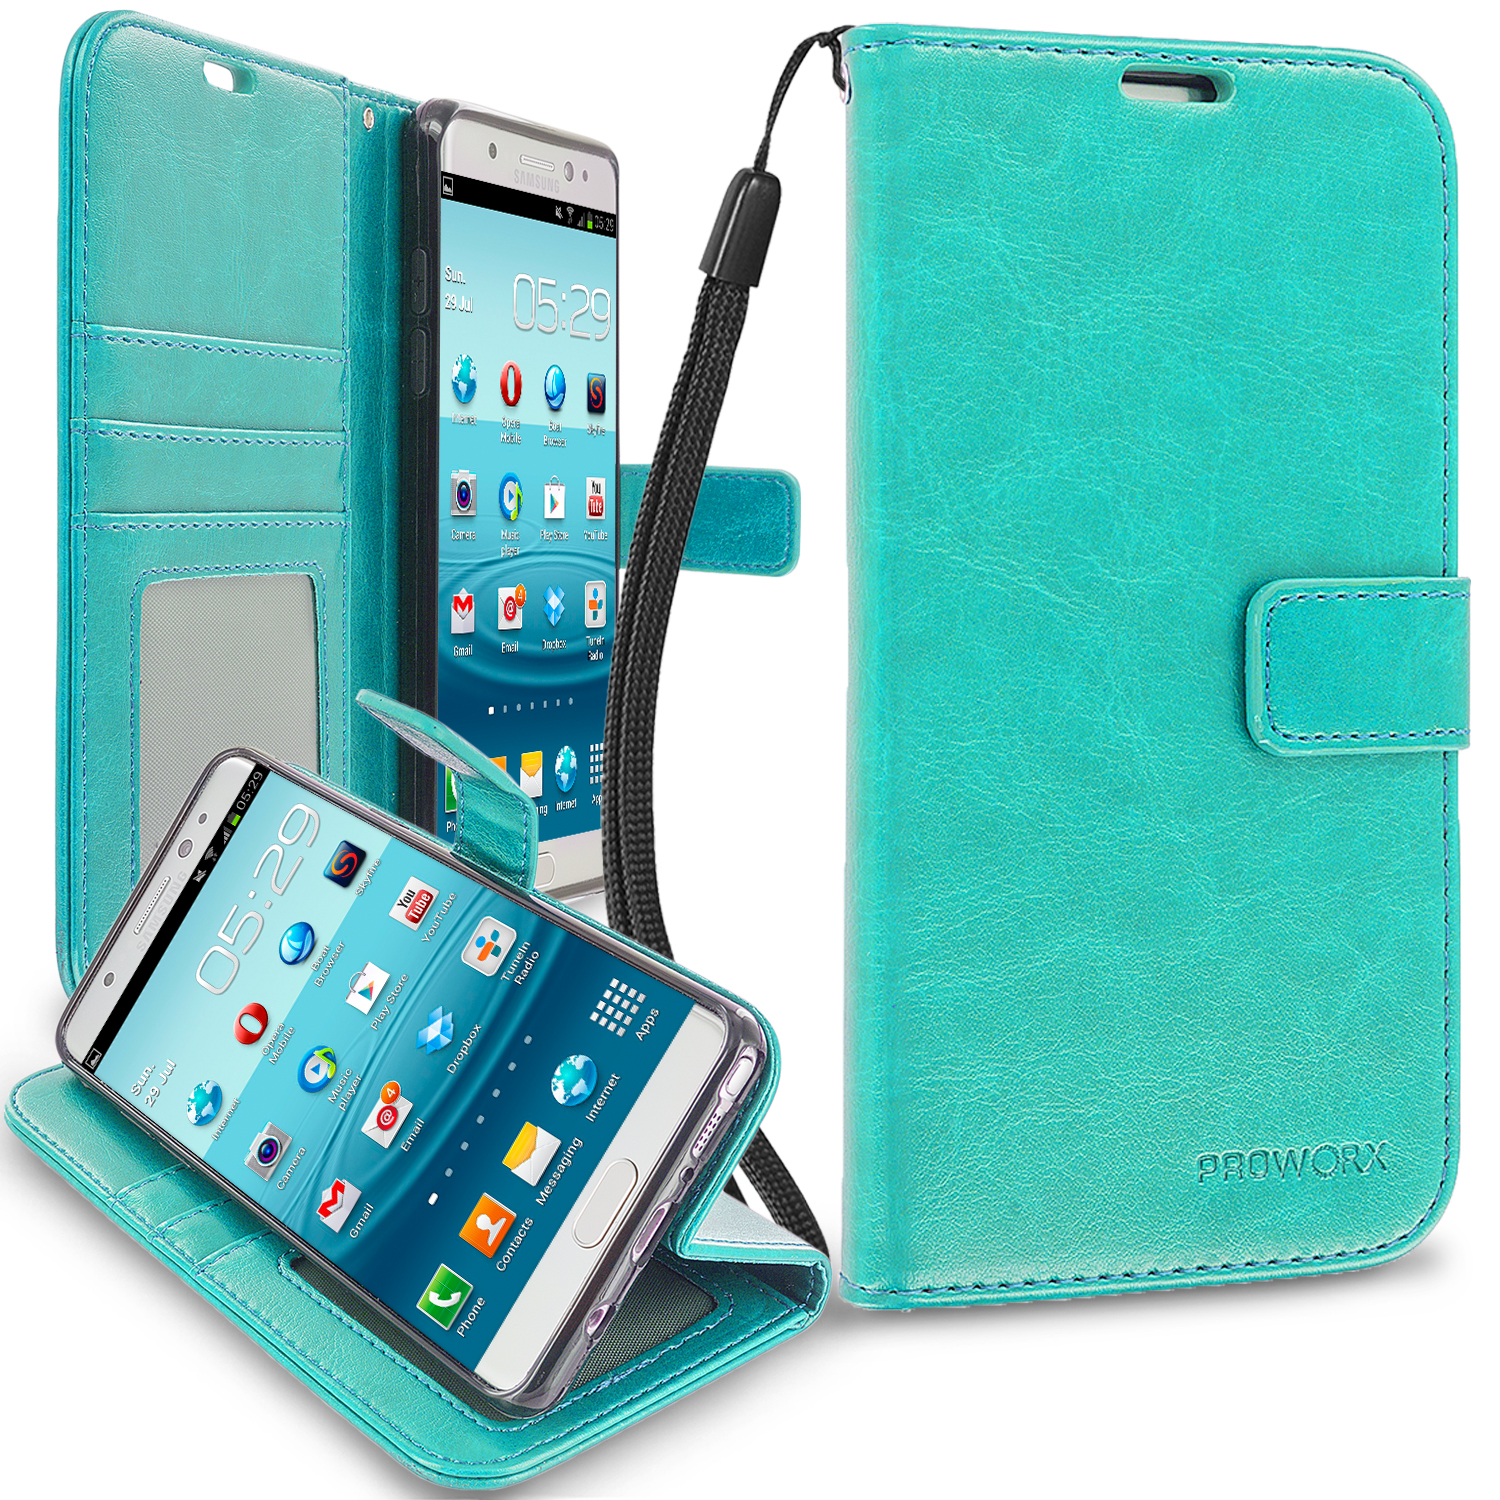 Samsung Galaxy Note 7 Mint Green ProWorx Wallet Case Luxury PU Leather Case Cover With Card Slots & Stand